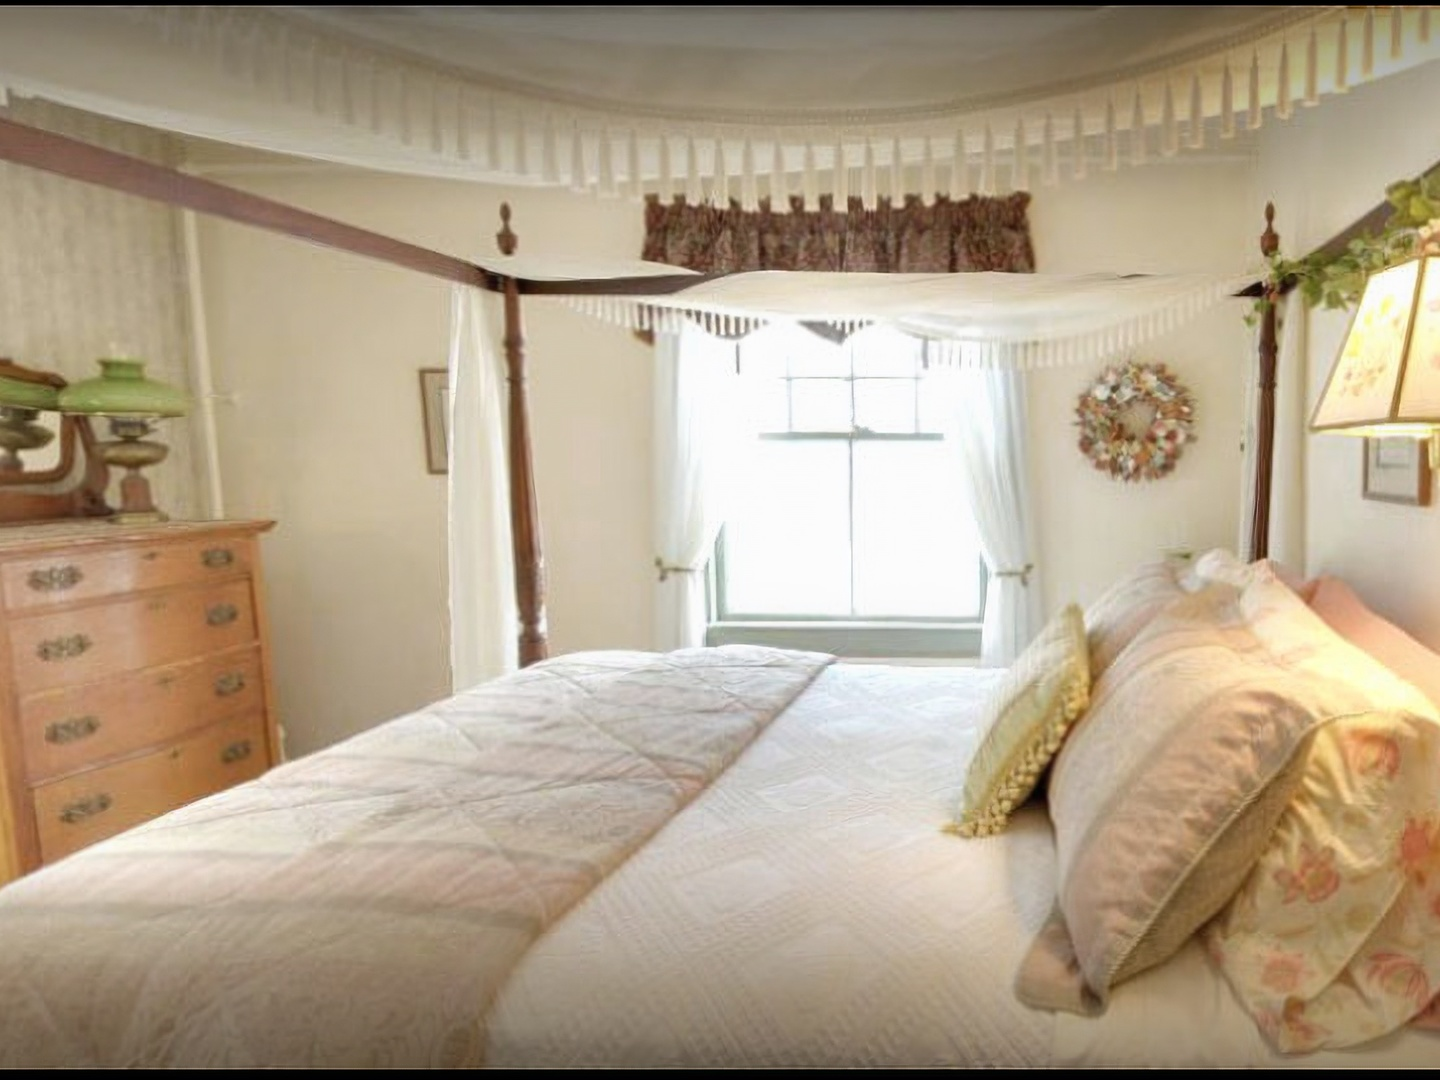 A bedroom with a large bed in a room at Inn at Tanglewood Hall.